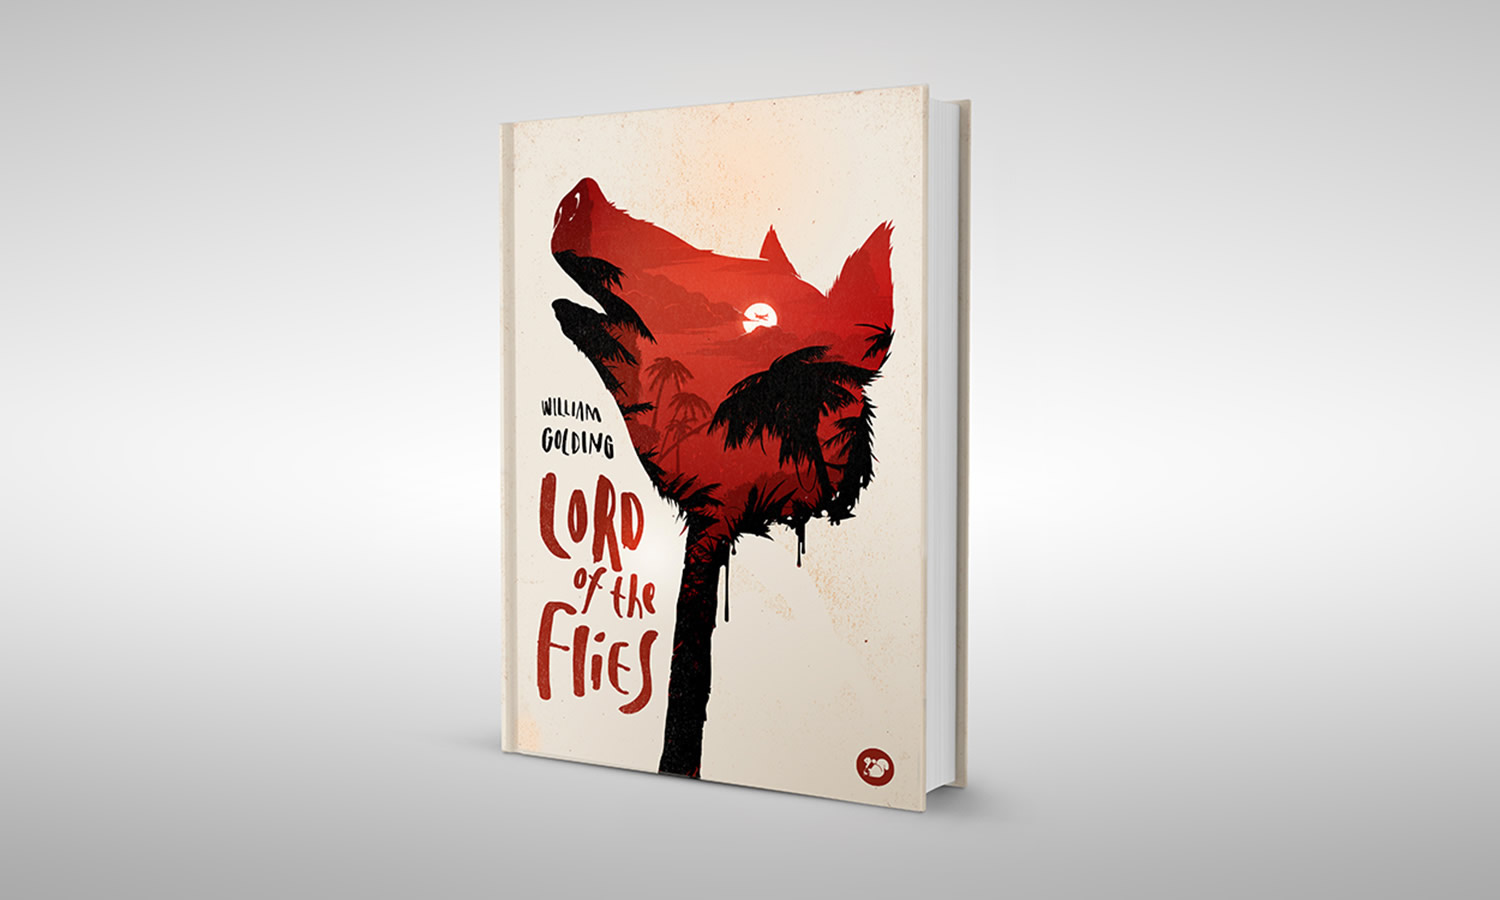 lord of the flies book cover, pig on cover, double exposure illustration